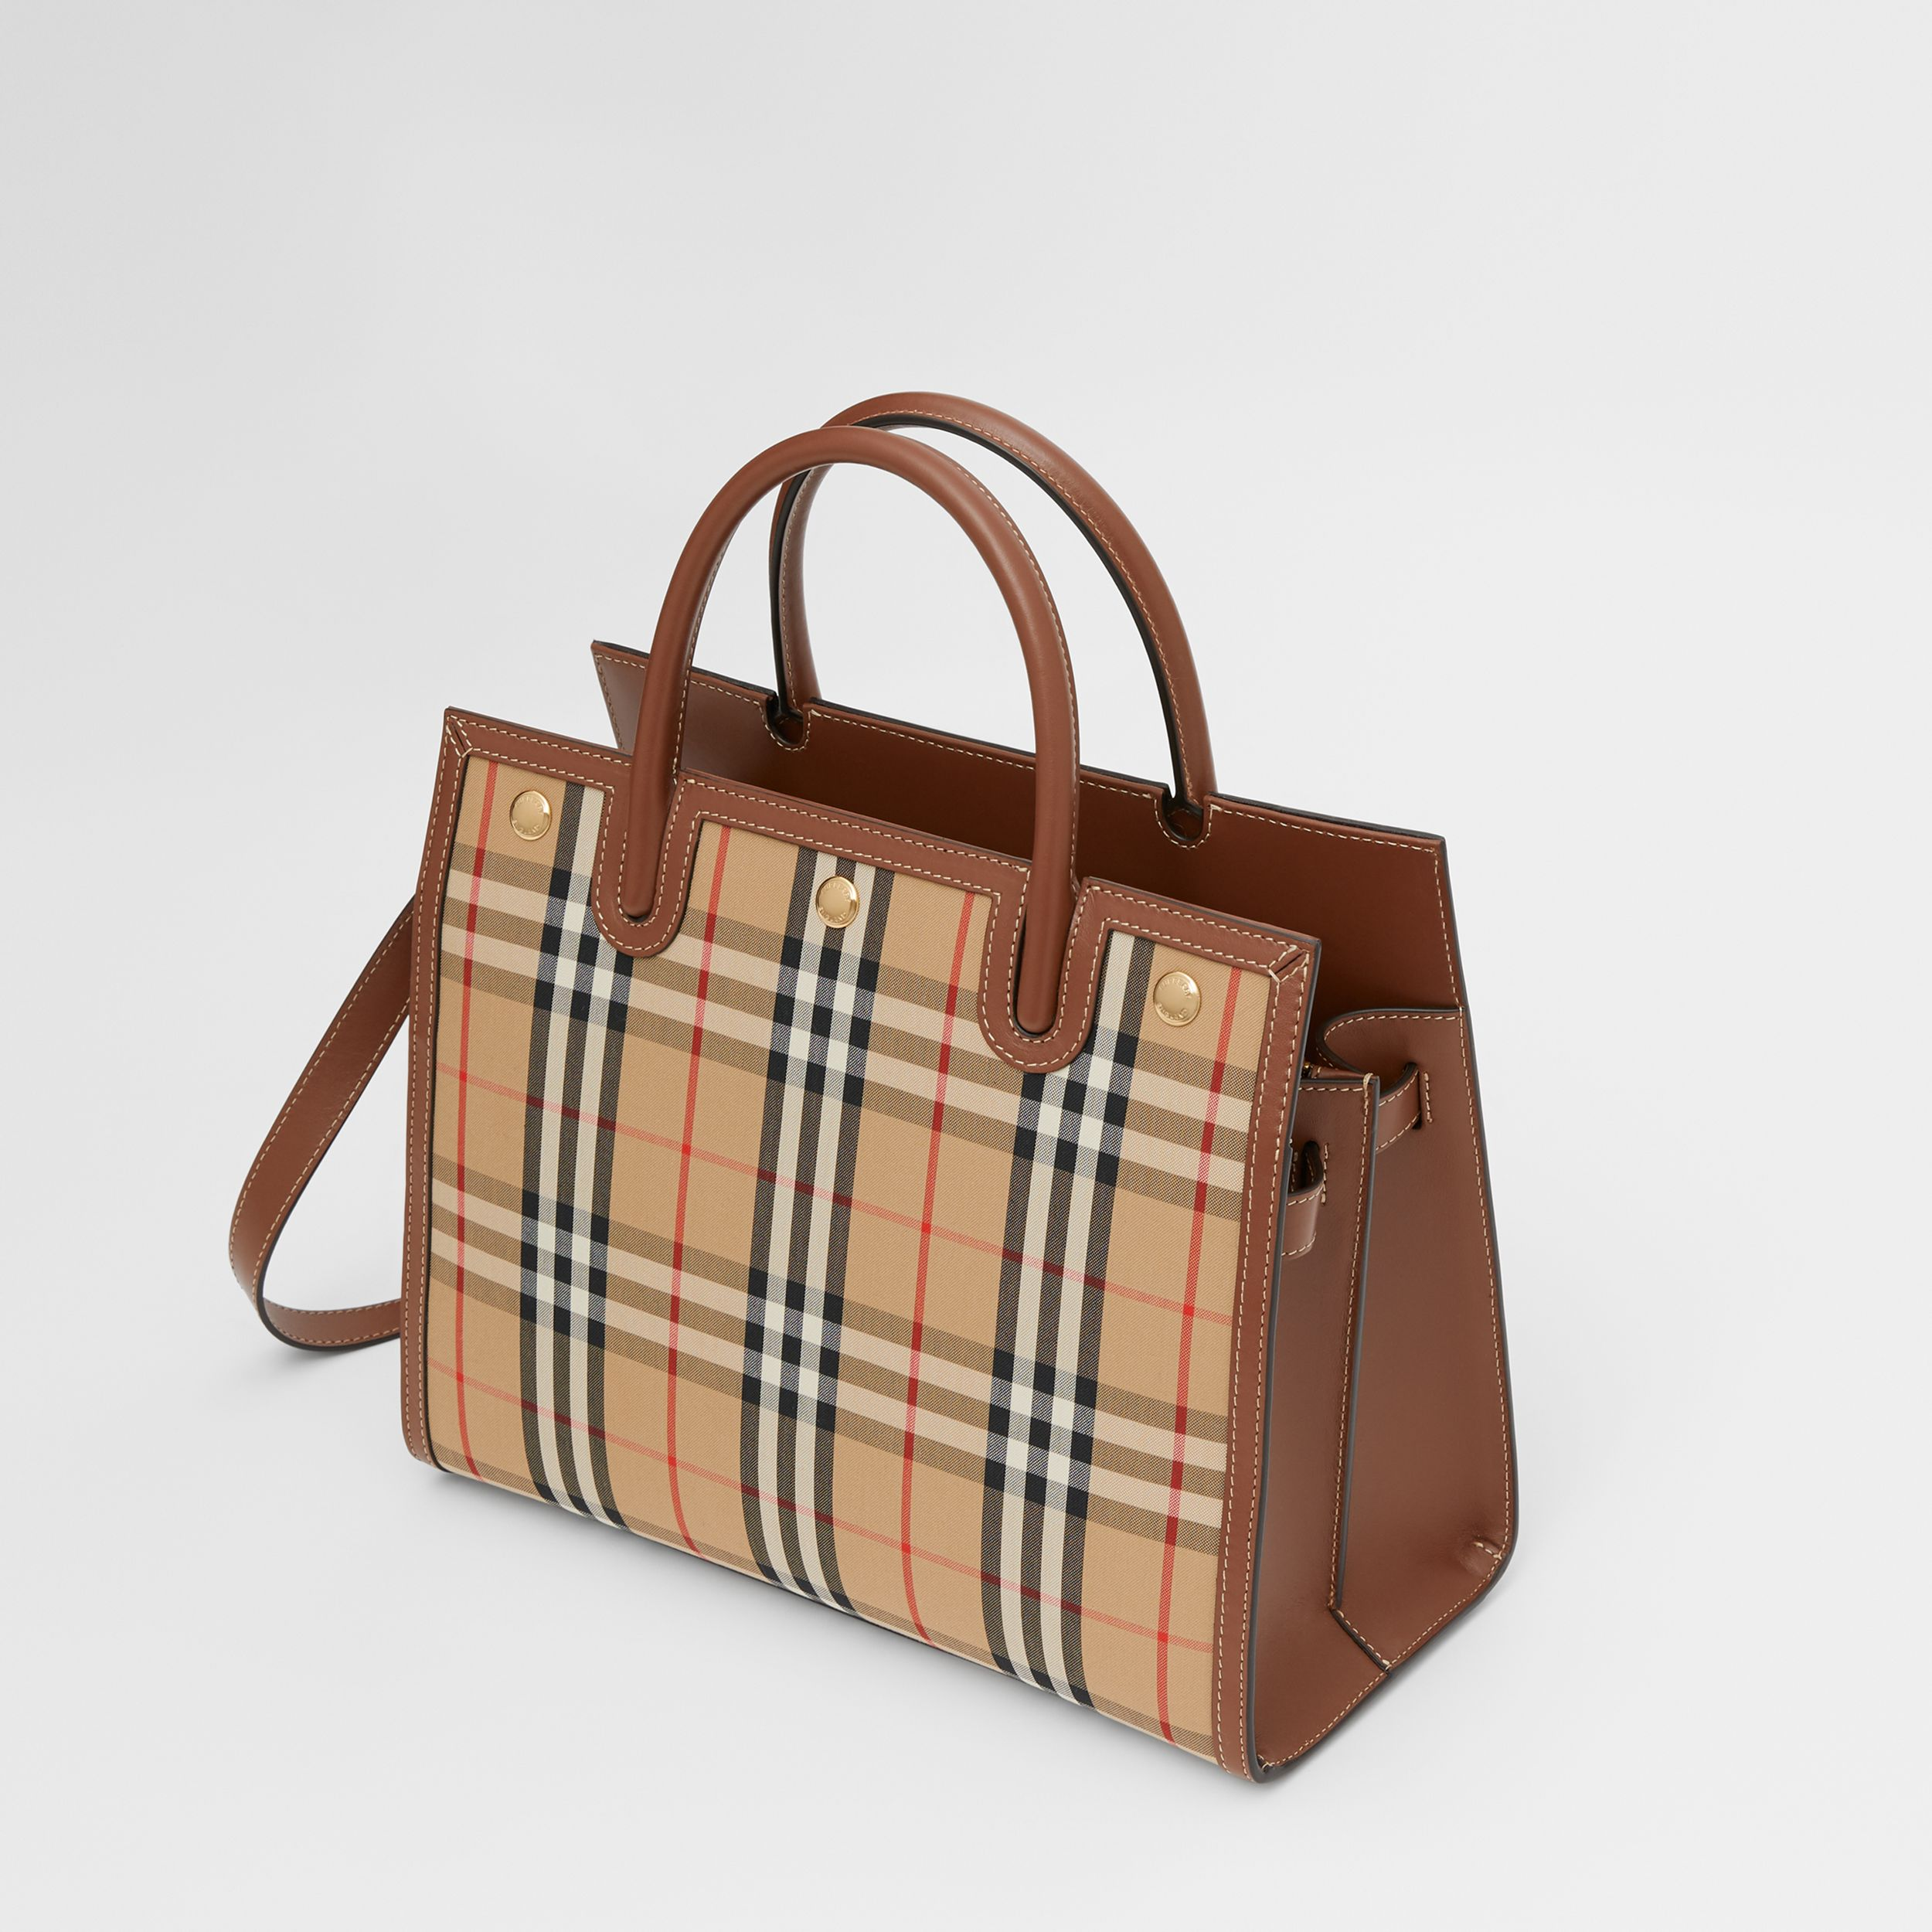 Medium Vintage Check Two-handle Title Bag in Archive Beige - Women | Burberry Singapore - 4